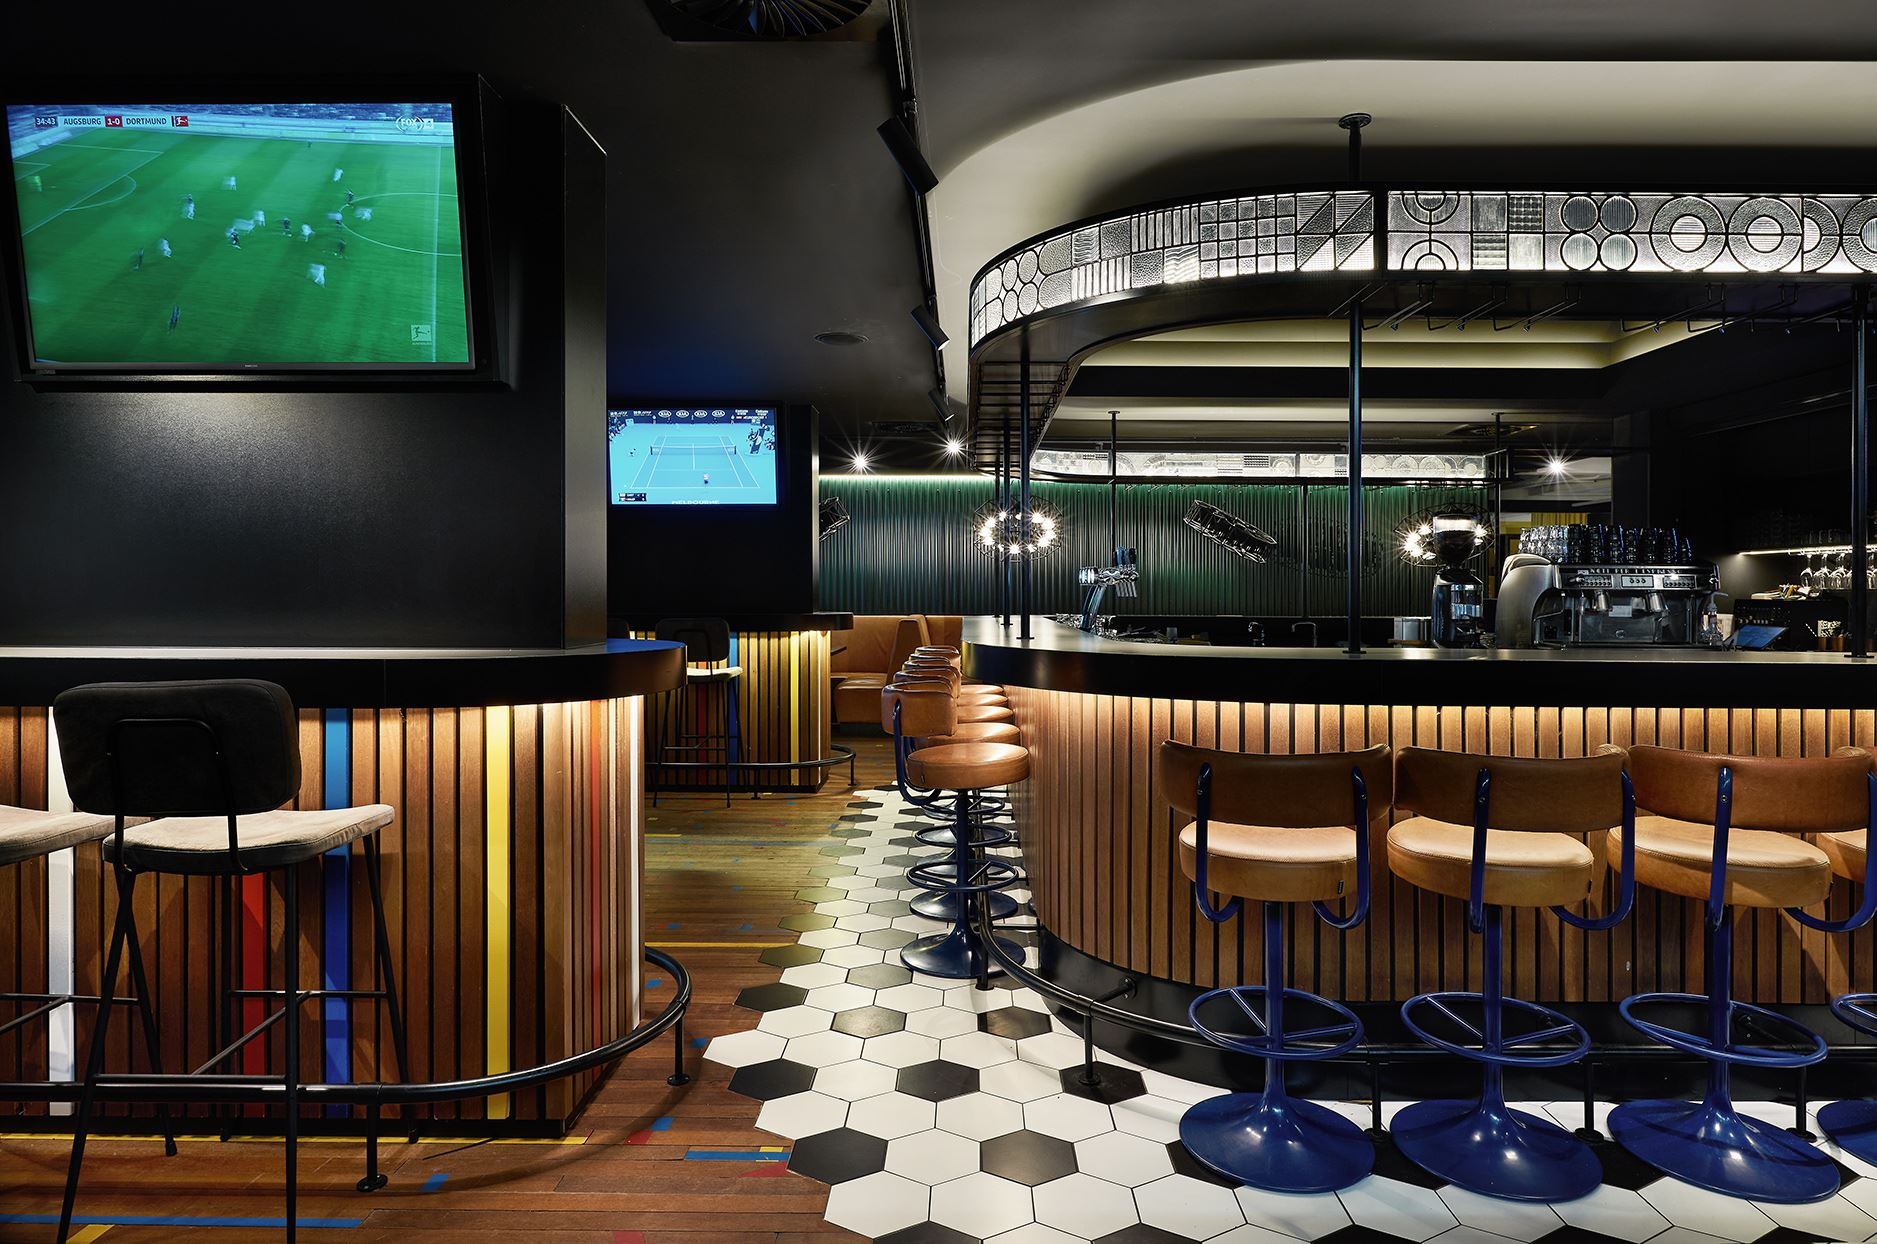 hup-sports-bar_tv_zitjes